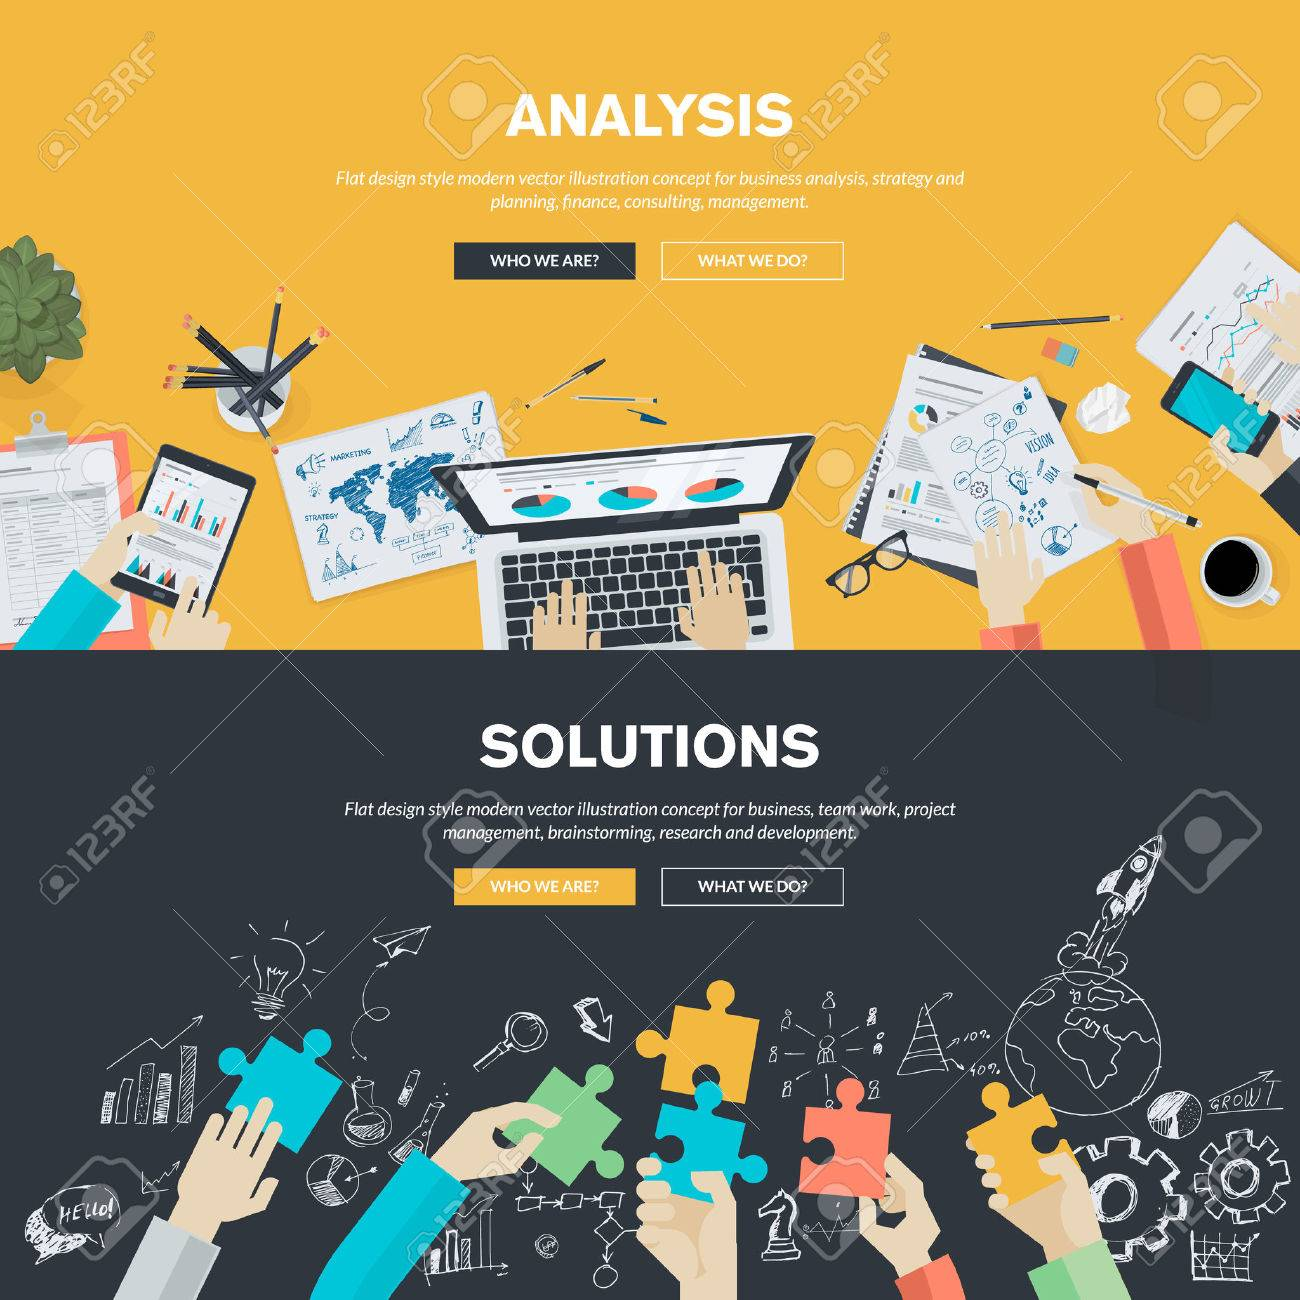 Flat design illustration concepts for business analysis, strategy and planning, finance, consulting, management, team work, project management, brainstorming, research and development. Concepts web banner and printed materials. - 37046599